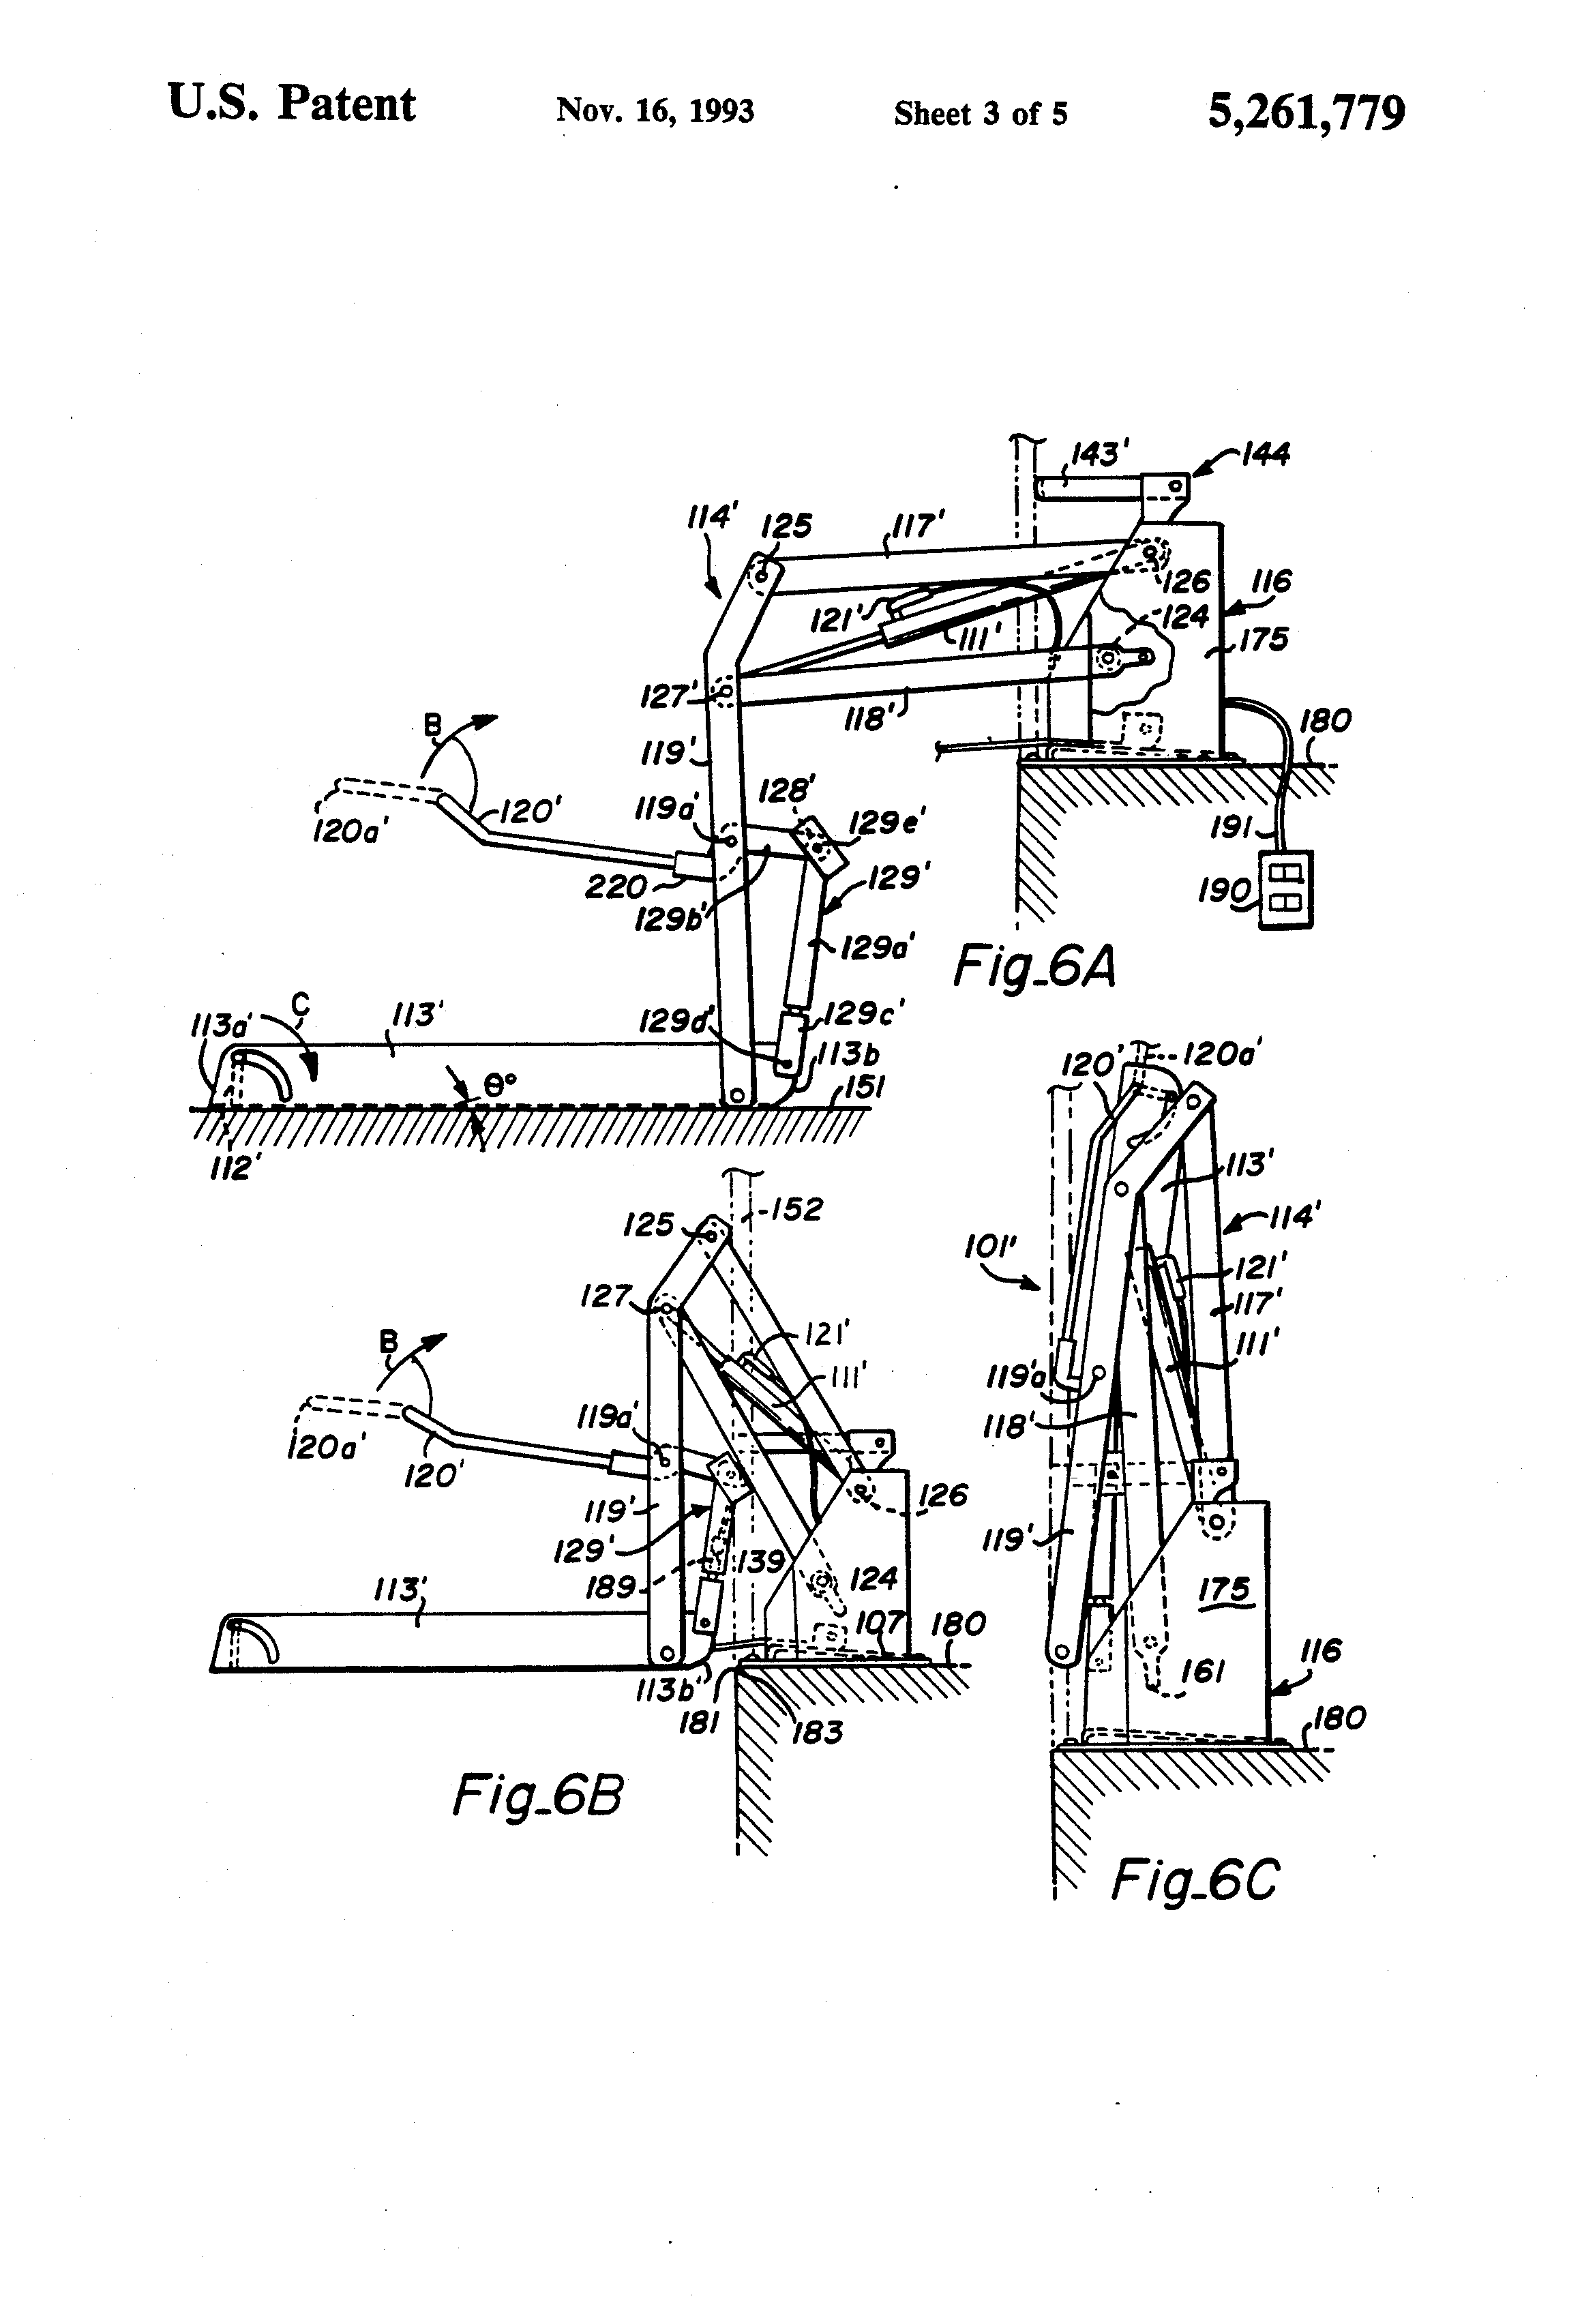 Hydraulic Lift Schematic : Patent us dual hydraulic parallelogram arm